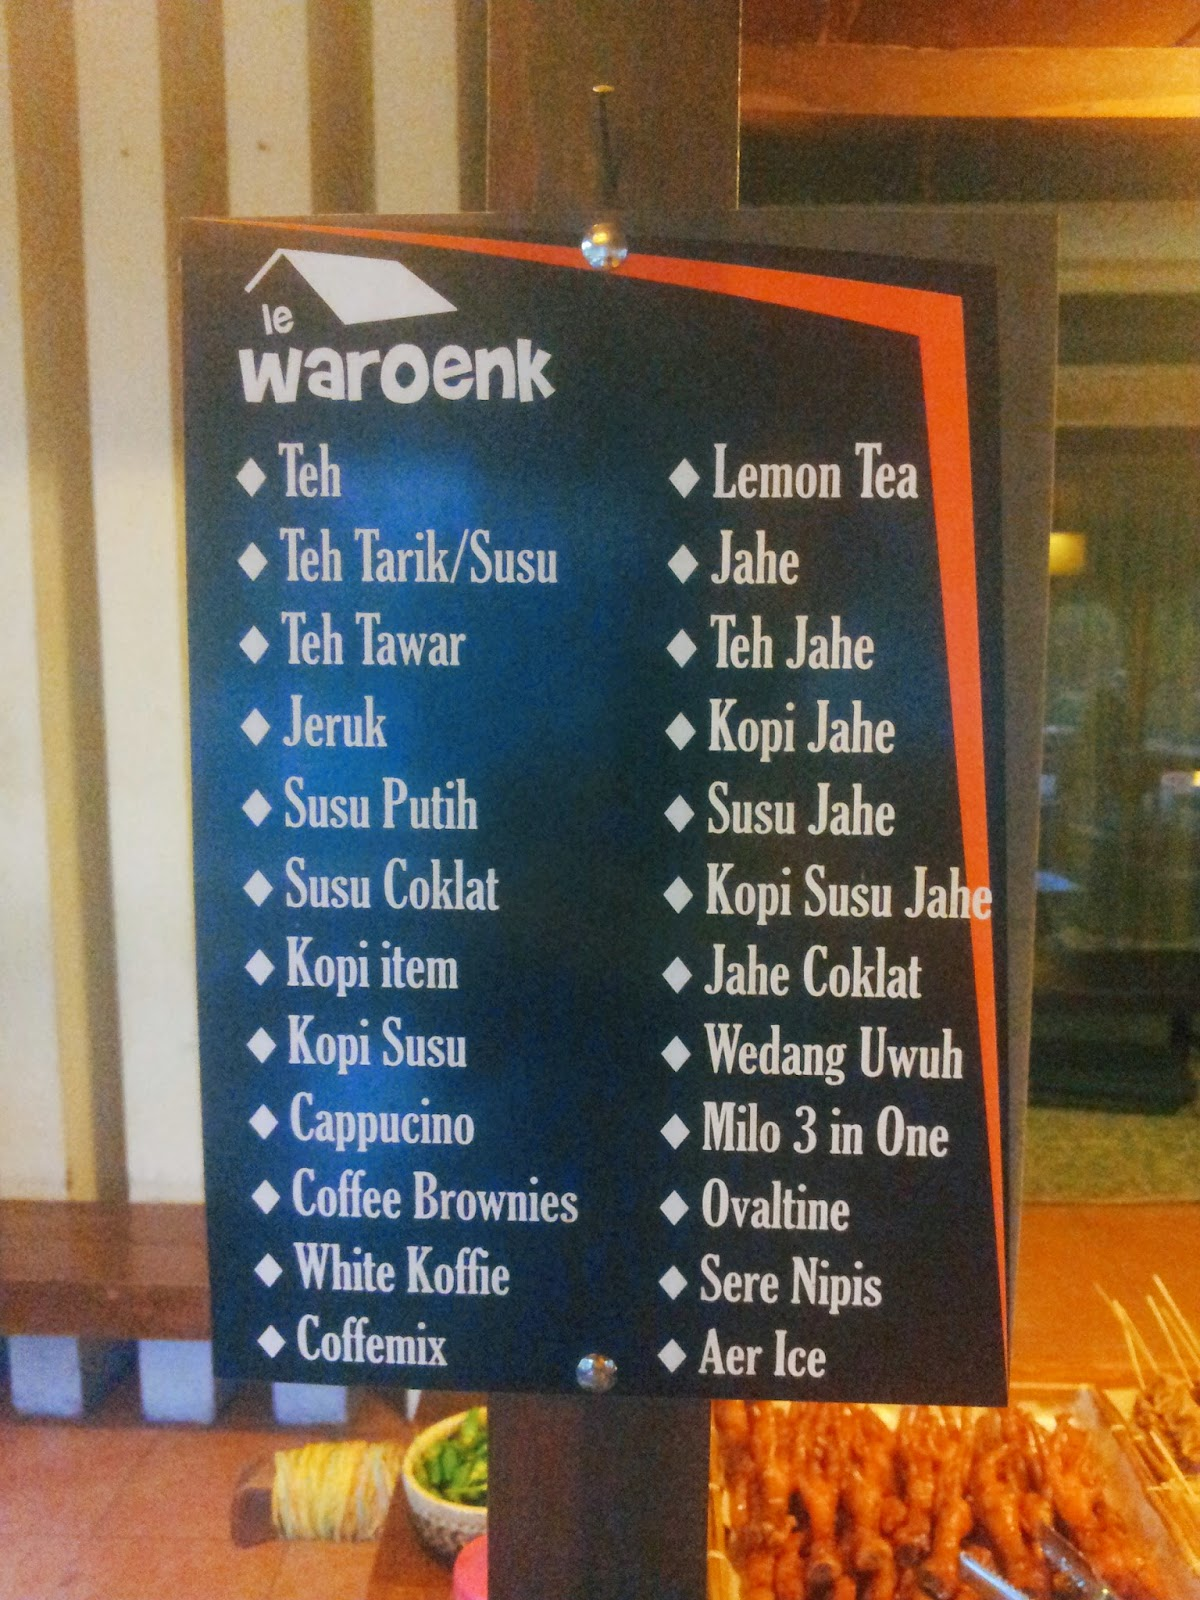 menu at Le Waroenk Jogja - rindumiu.blogspot.com